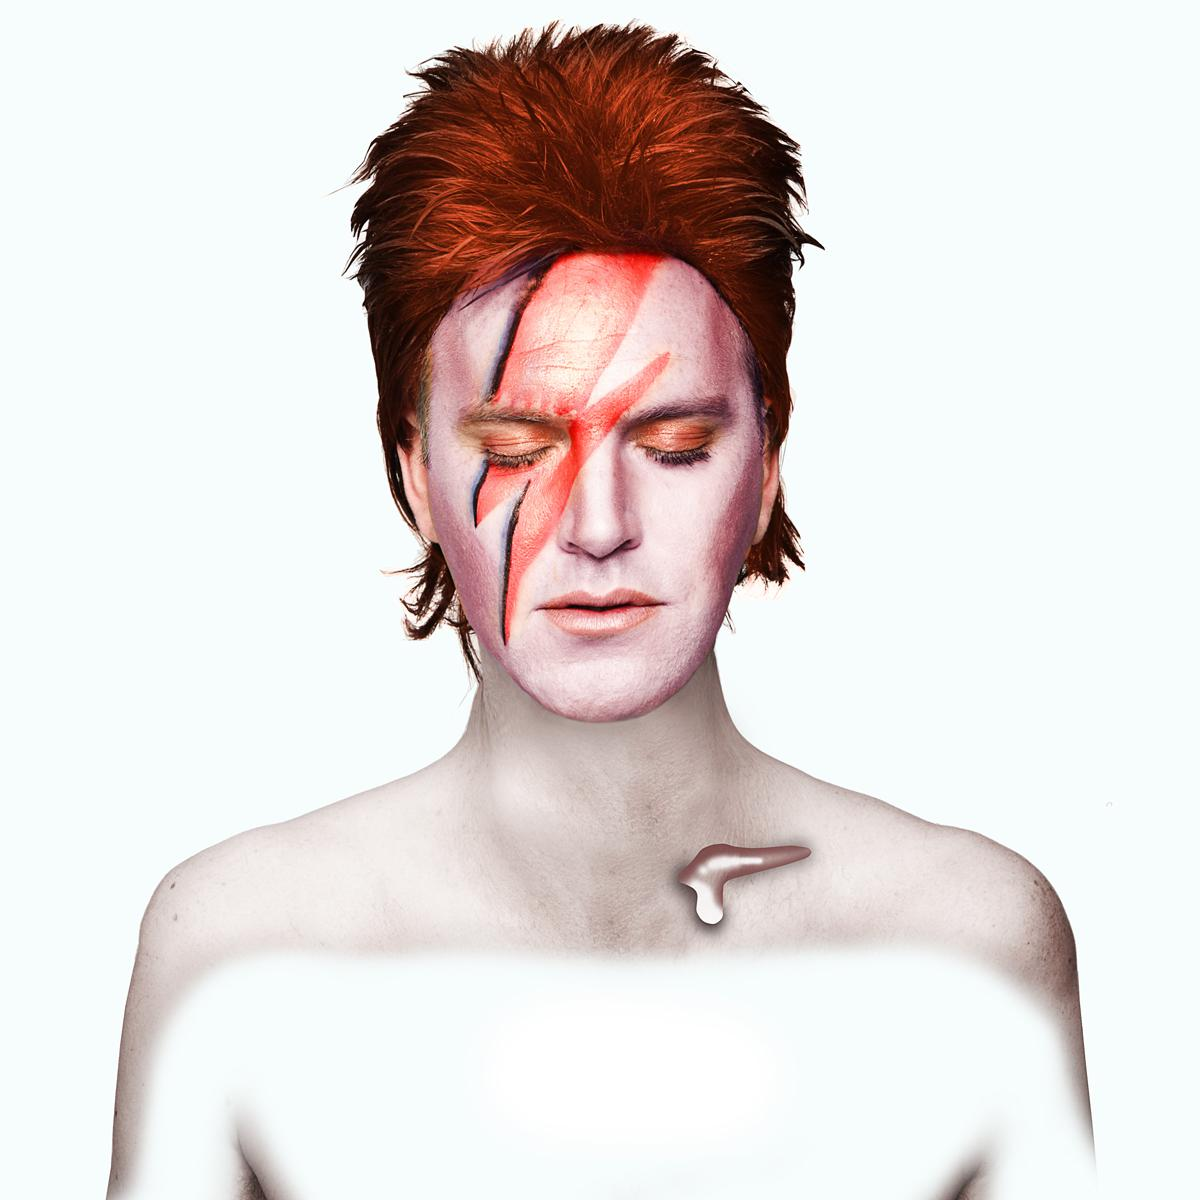 Not David Bowie by Julian Hanford for APA Annual Feature in Shots Magazine 2015